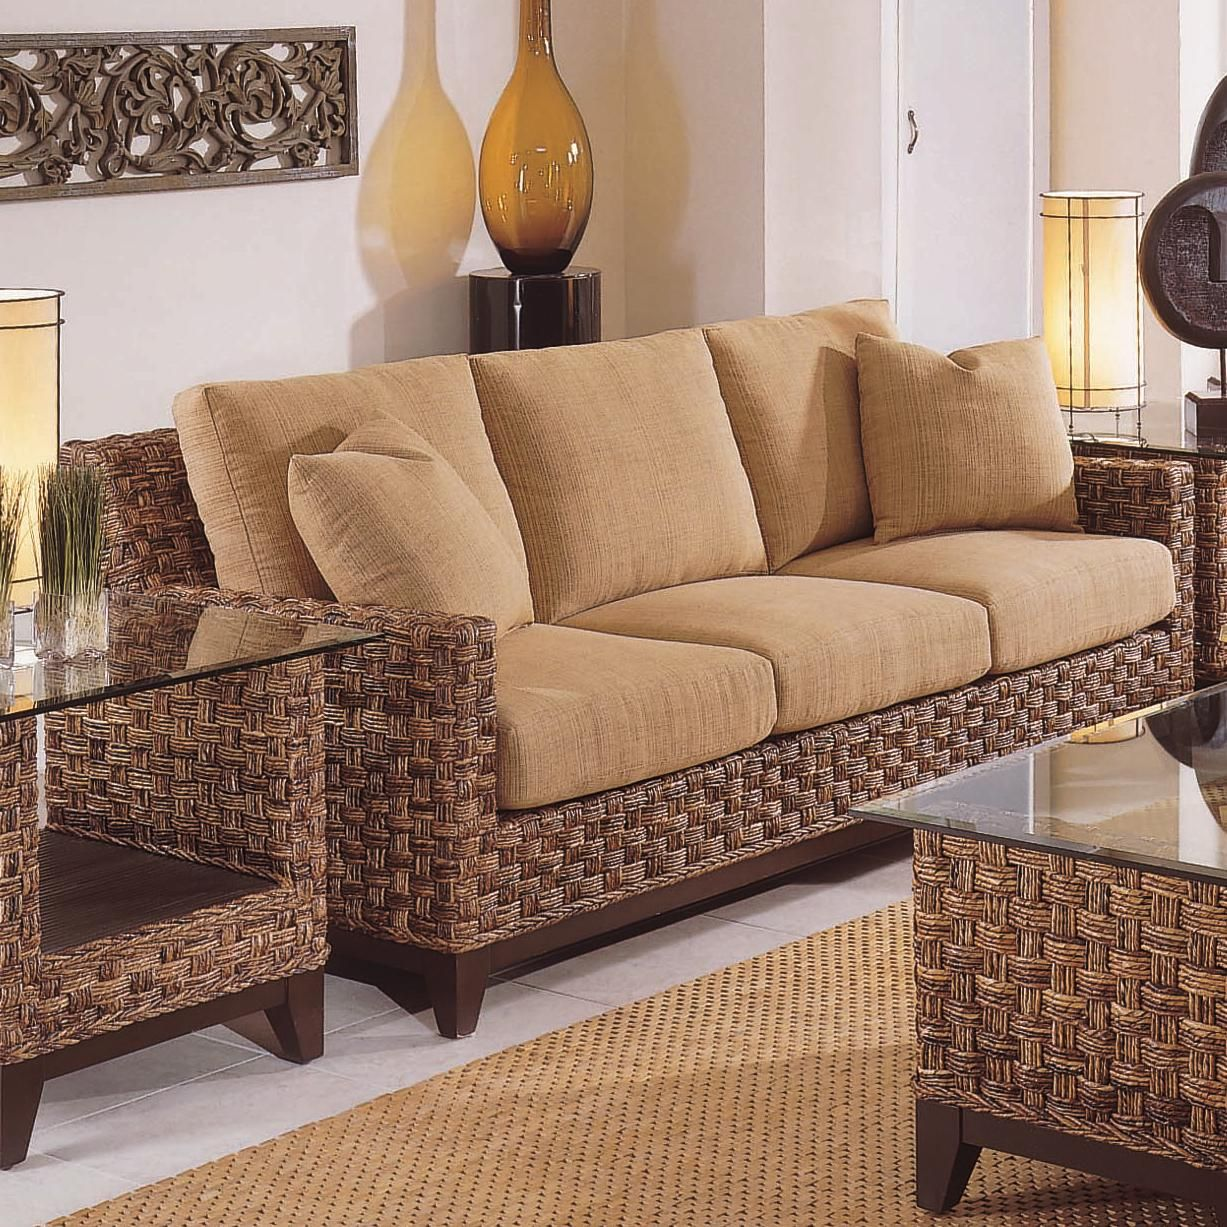 Braxton Culler Tribeca 2960 Modern Wicker Three Seat Queen Sleeper Sofa With Innerspring Mattress Hudson S Furniture Tampa St Petersburg